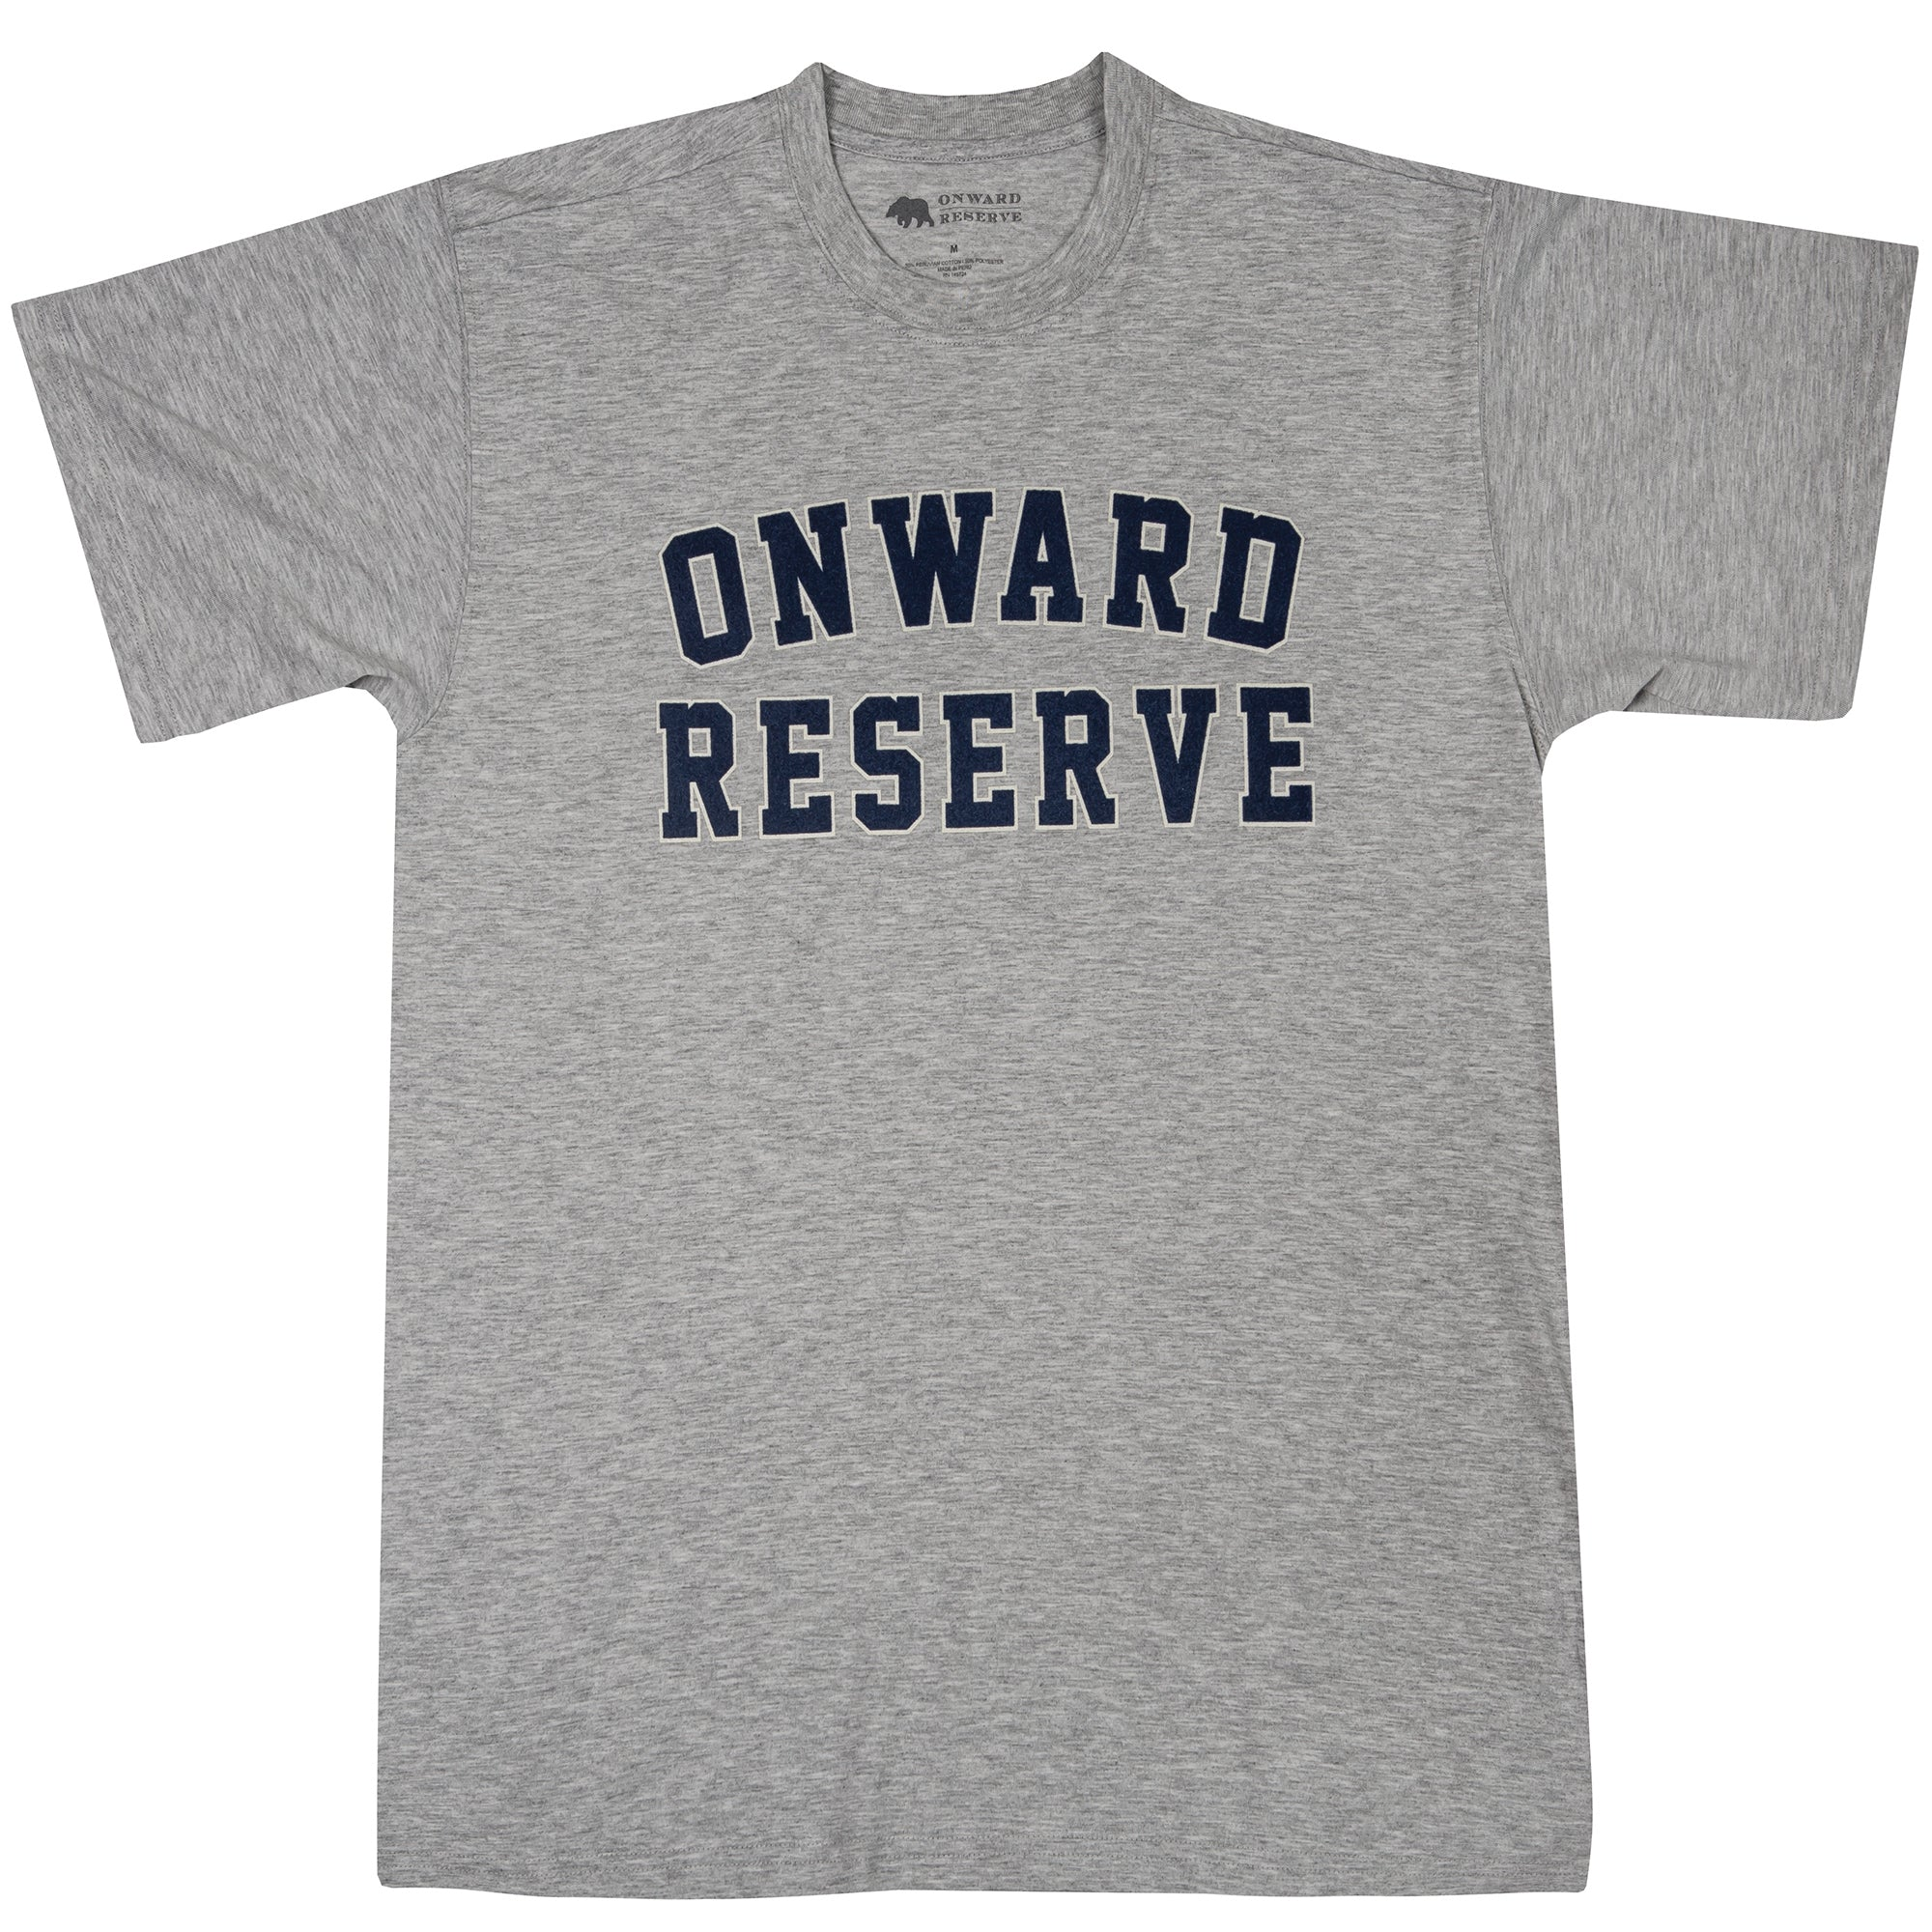 Onward Reserve Flocked Collegiate Short Sleeve Tee